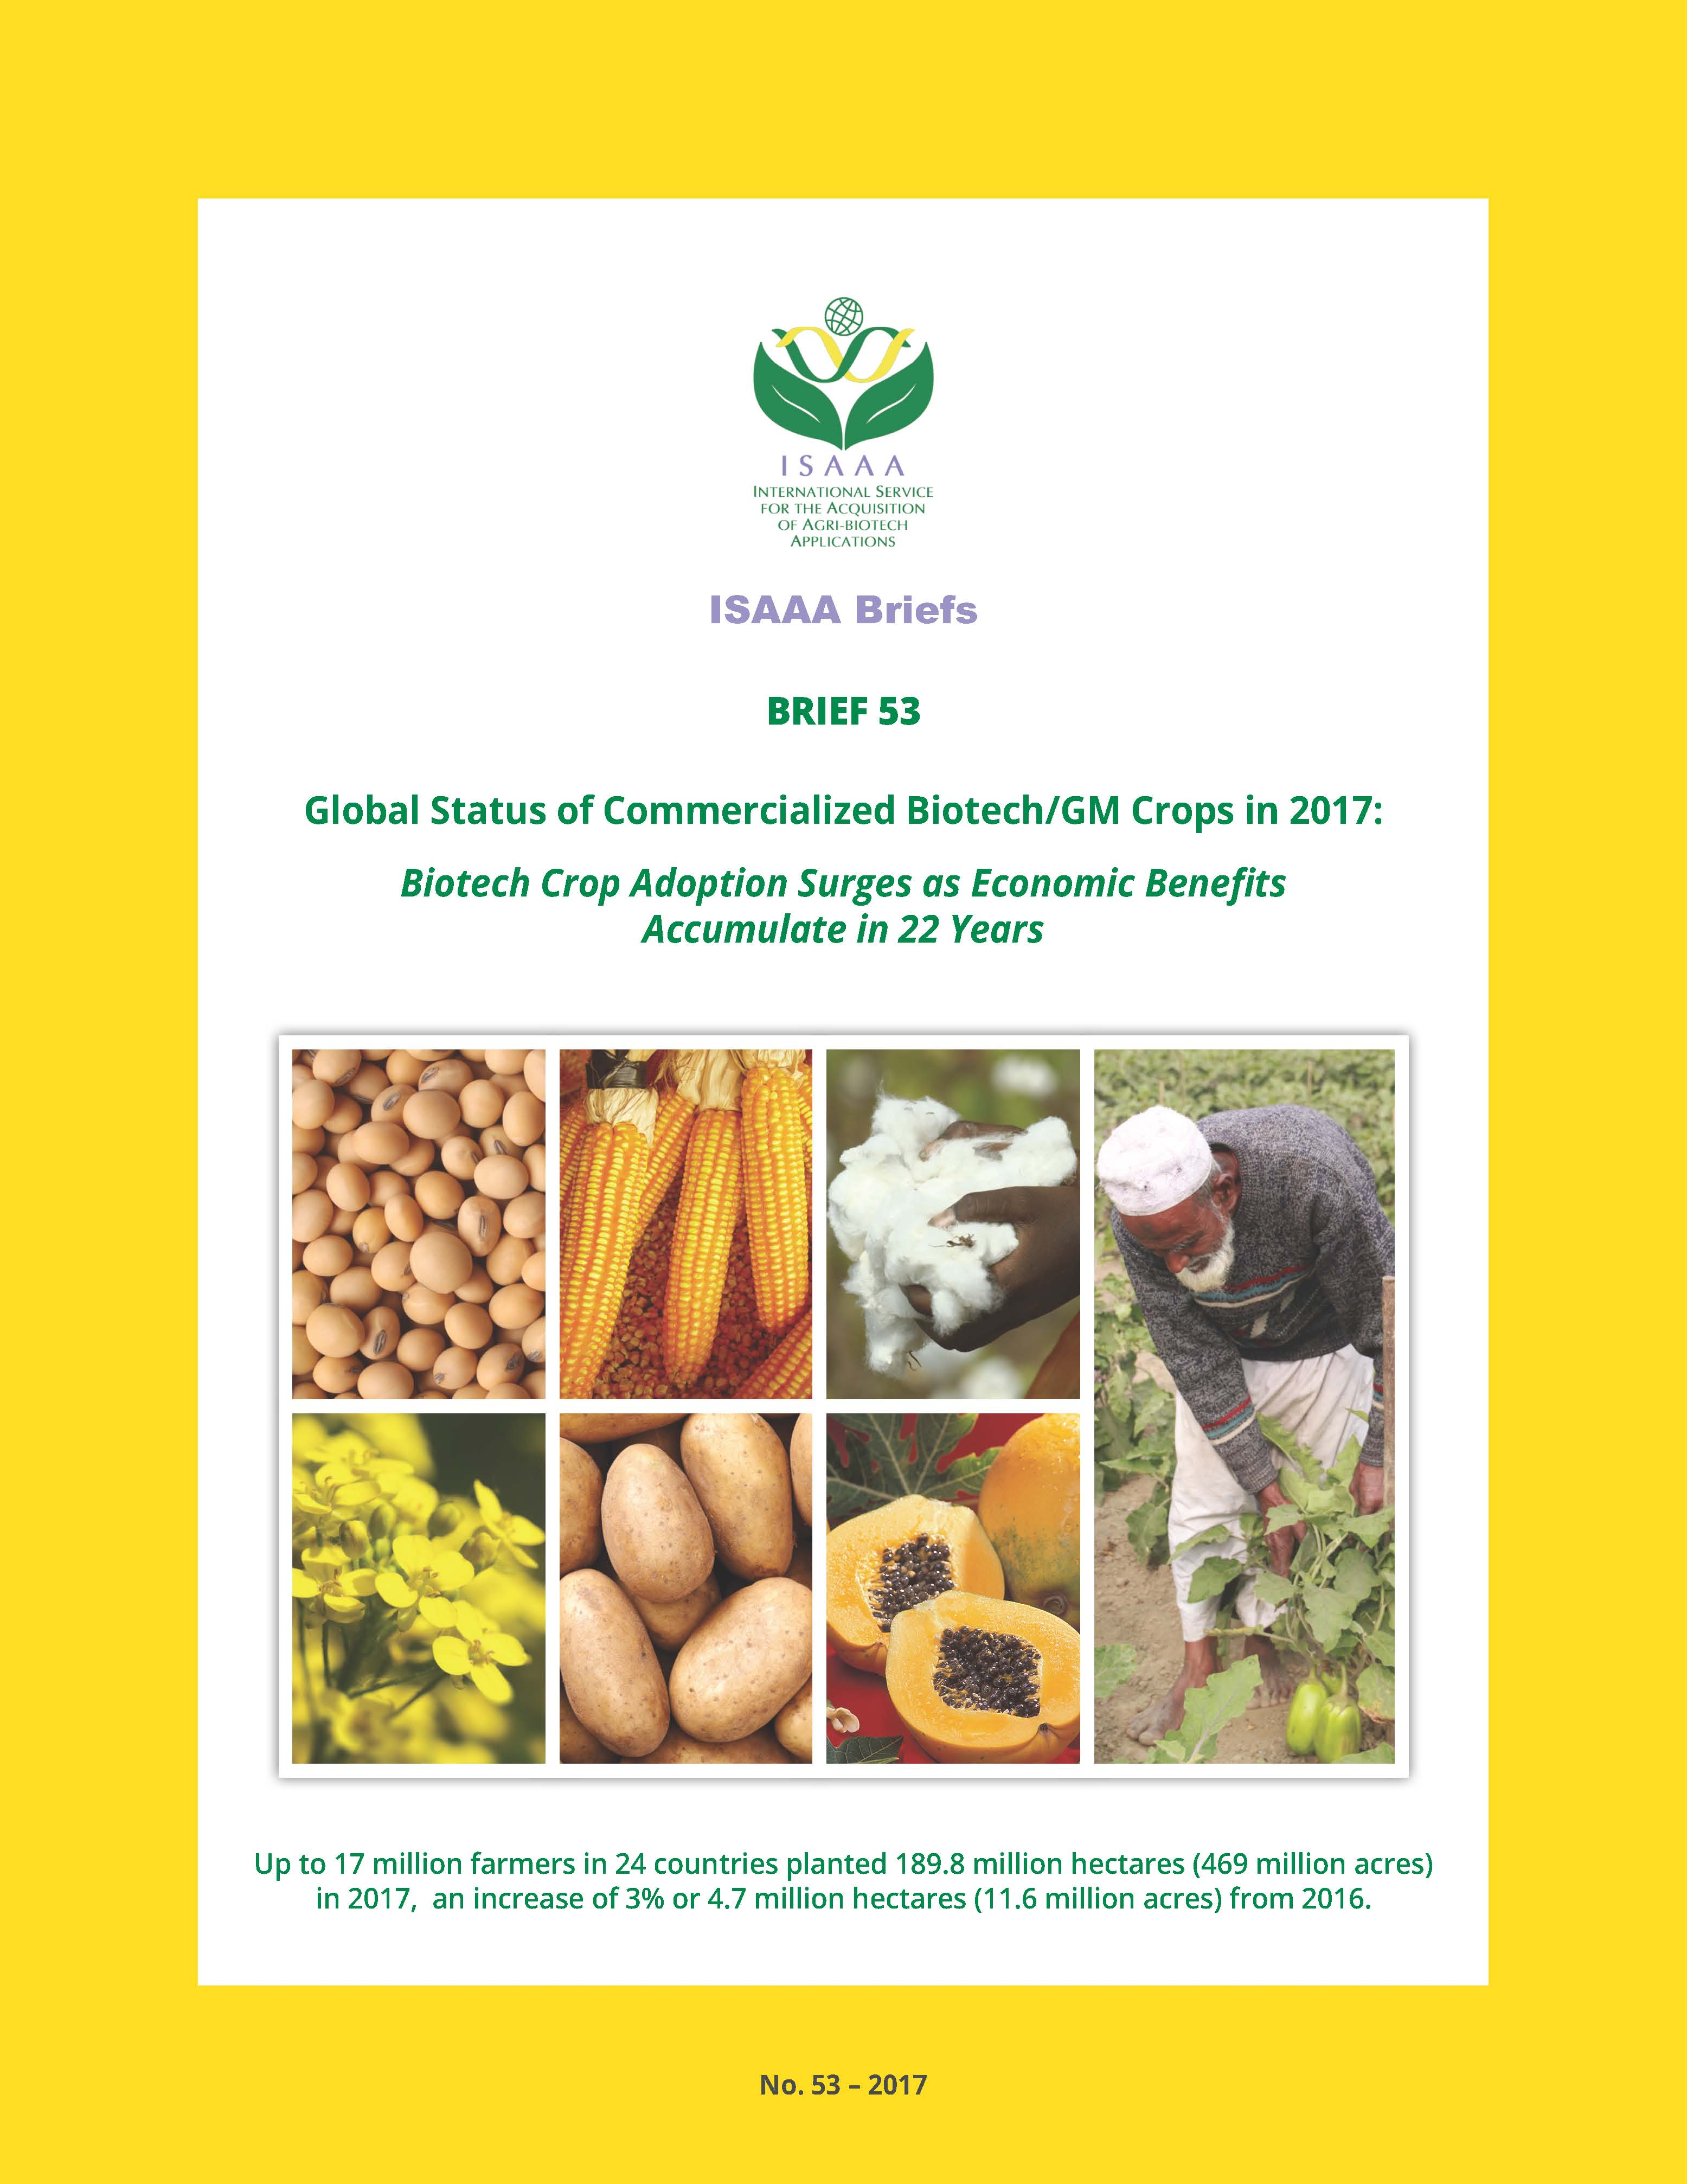 Global Status of Commercialized Biotech/GM Crops: 2017